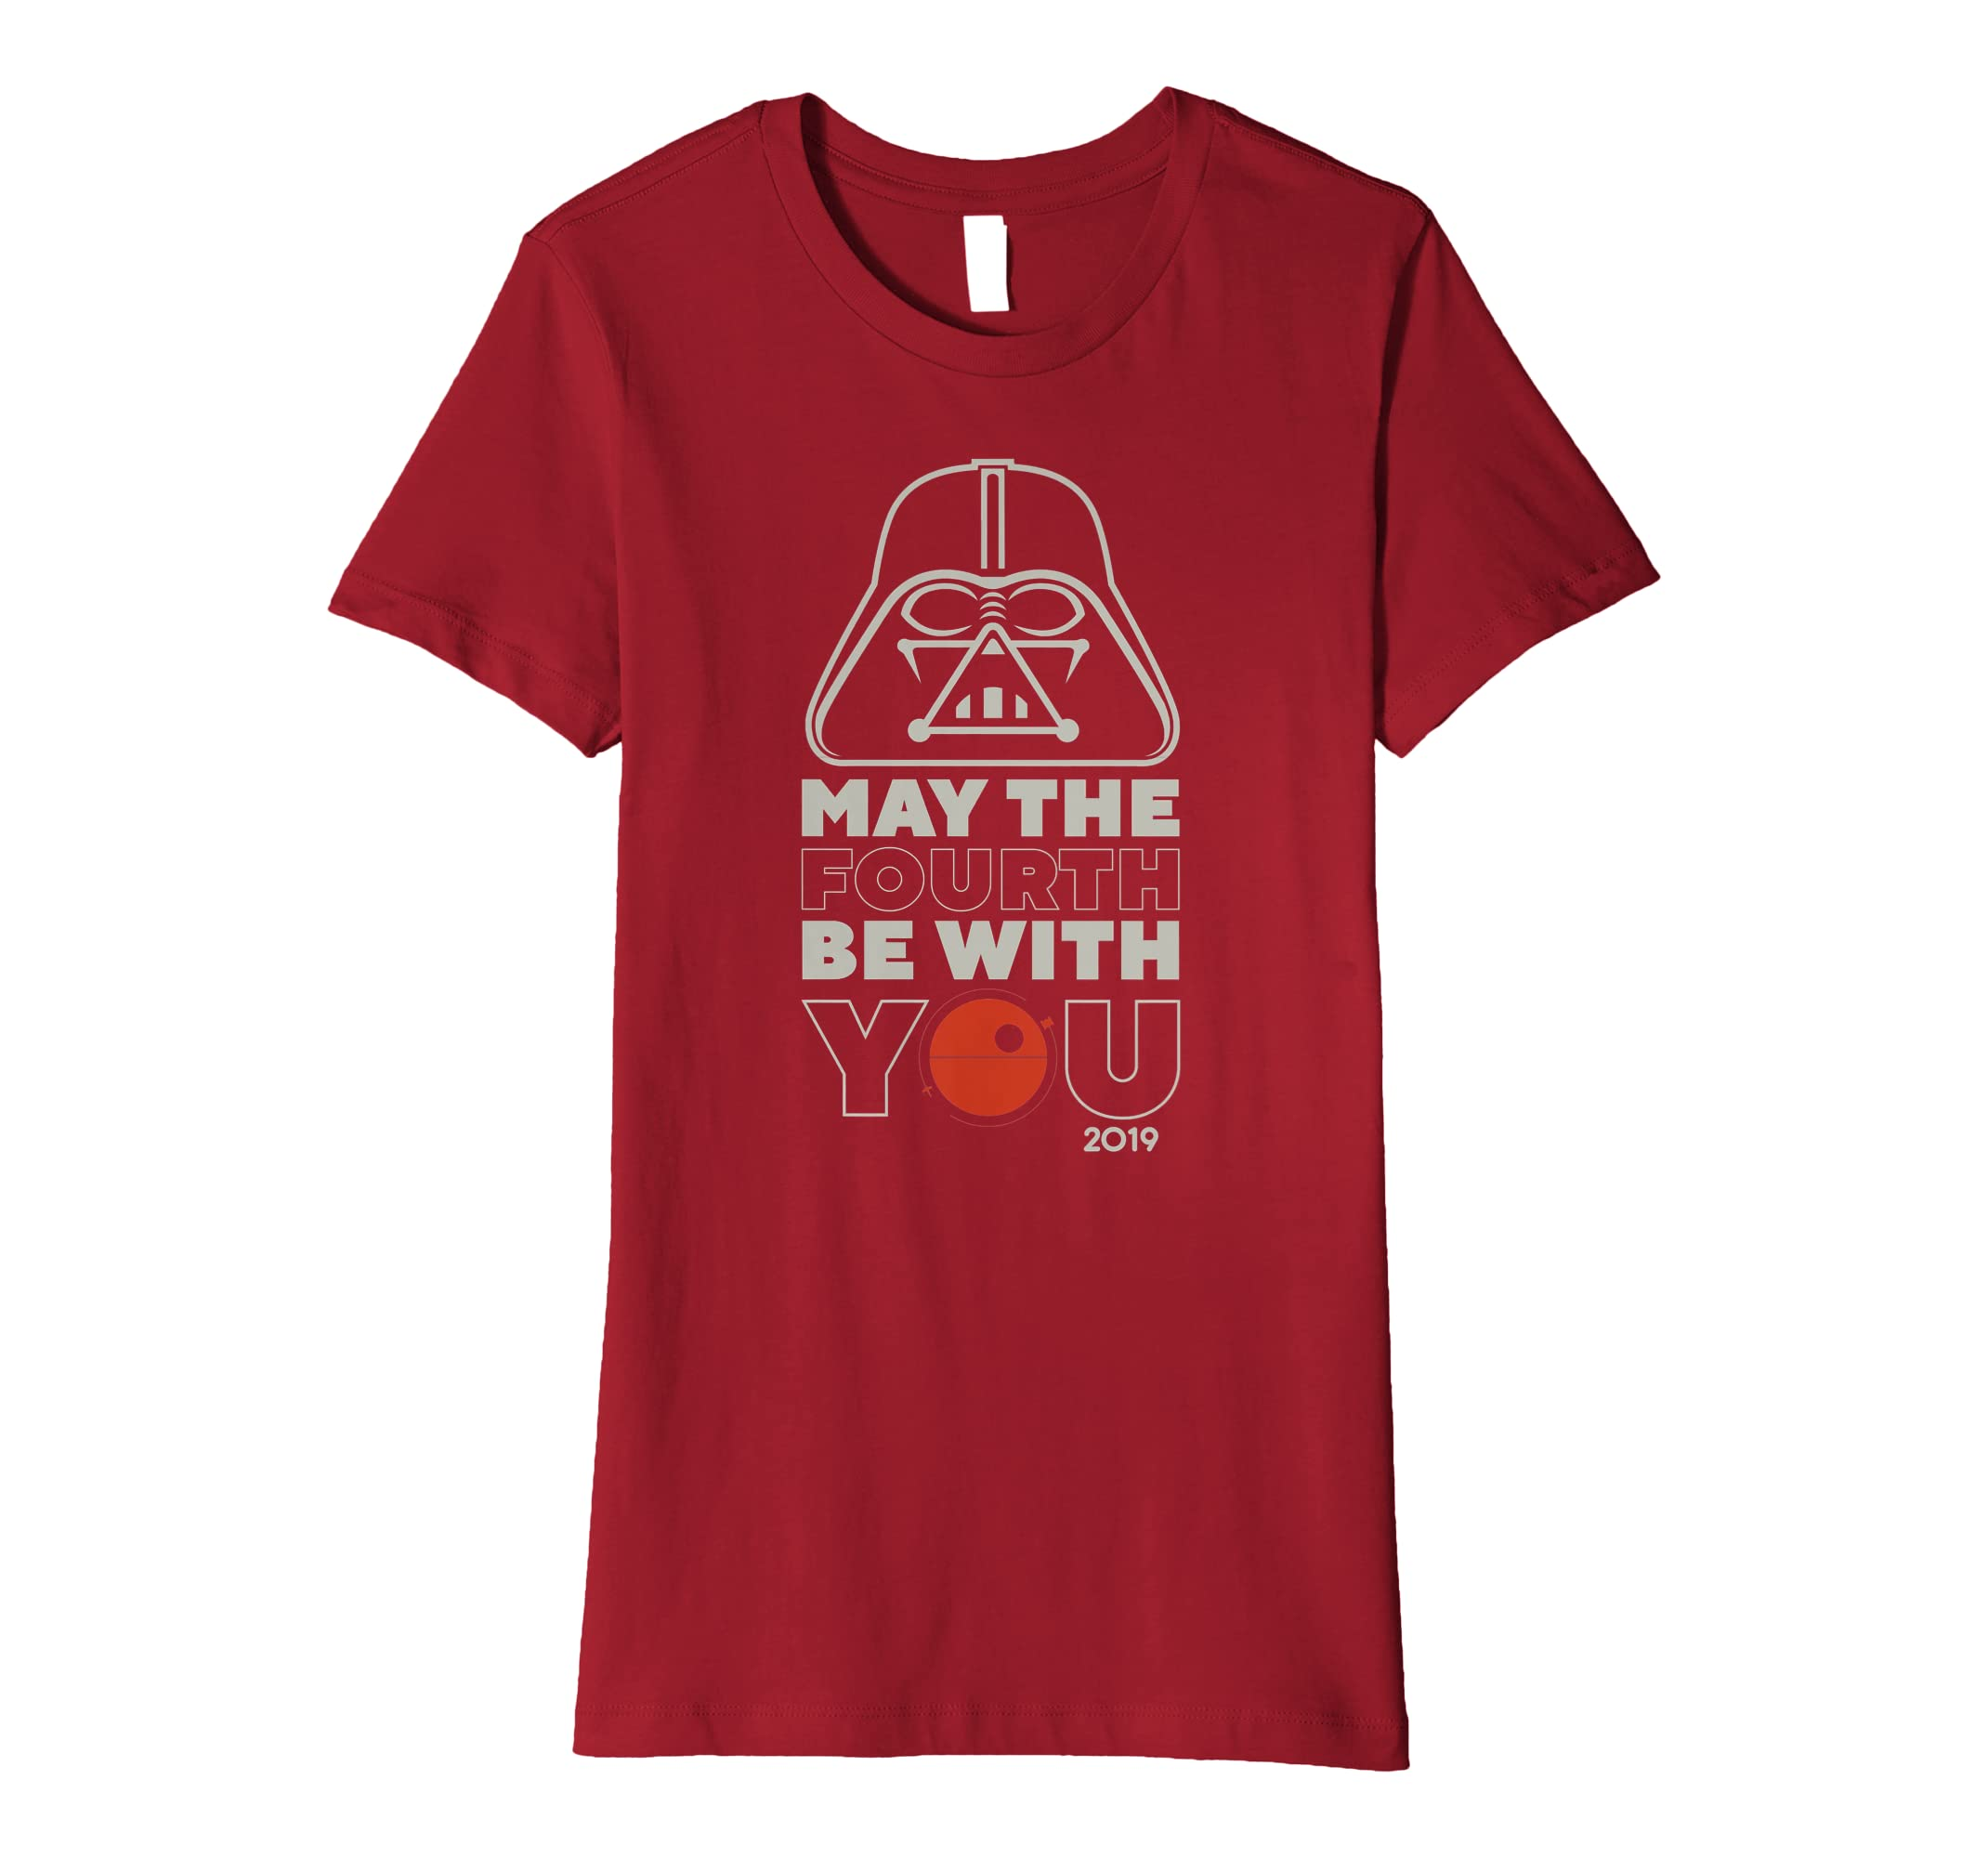 fca98b6d0 Star Wars May The Fourth Be With You 2019 Vader T-Shirt: Amazon.co.uk:  Clothing